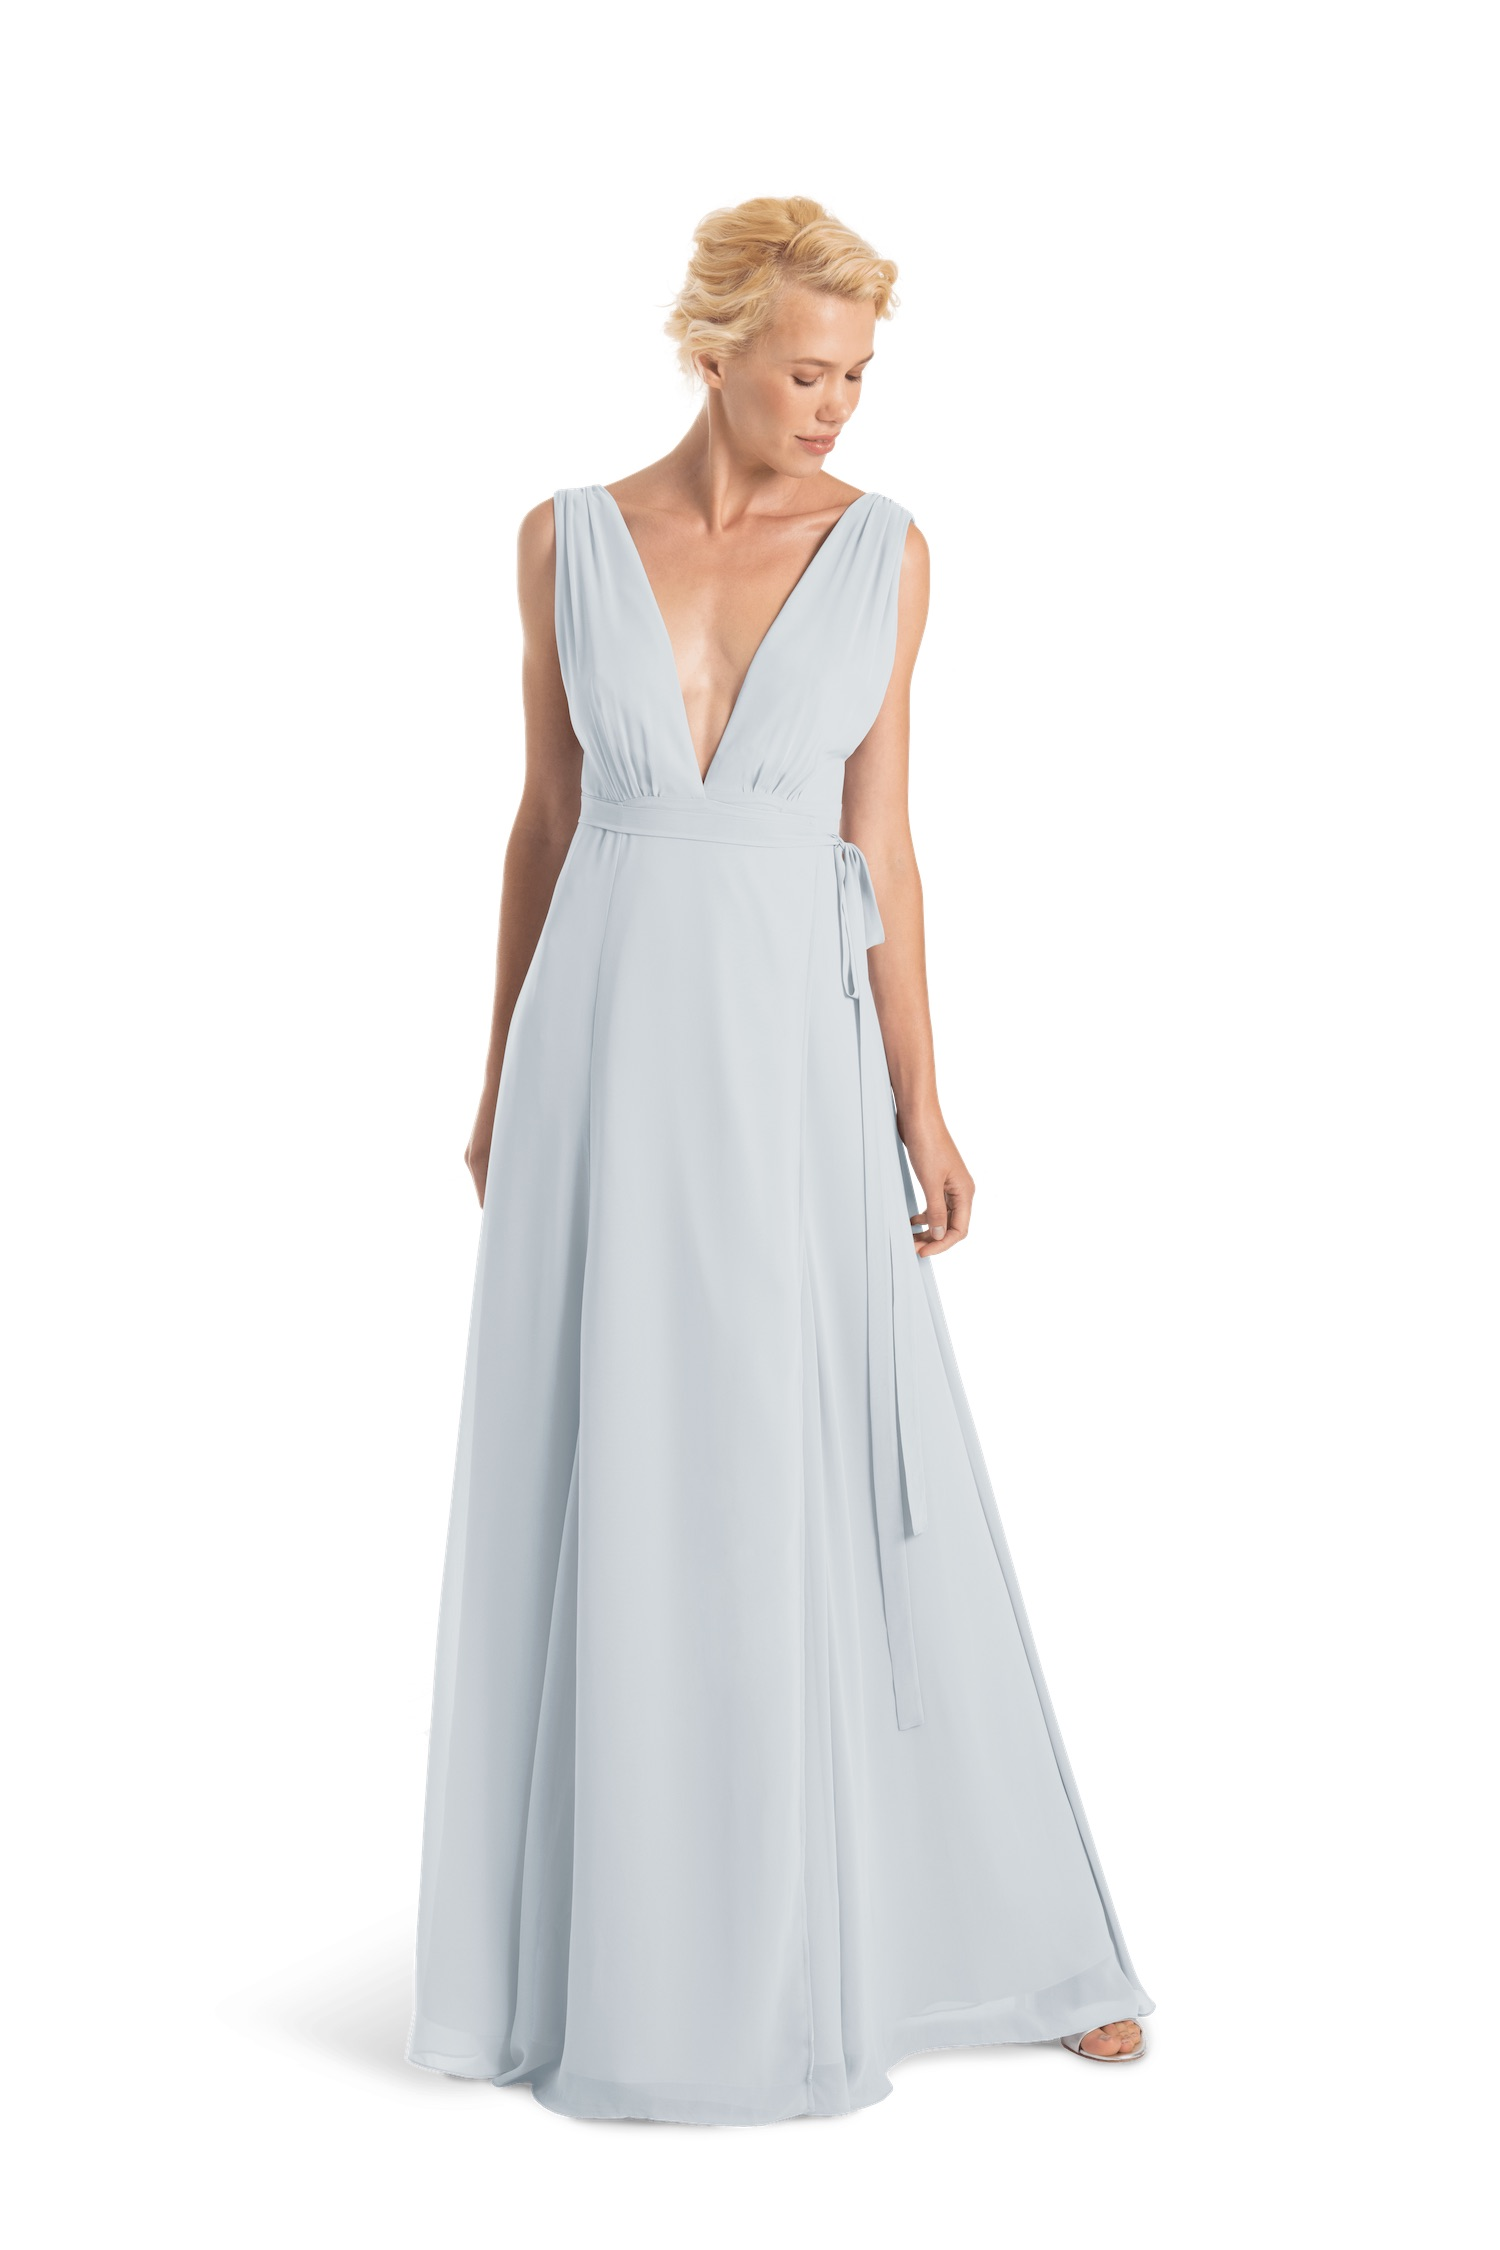 Romy Long by Joanna August in Morning Dew light blue with deep v neckline in chiffon